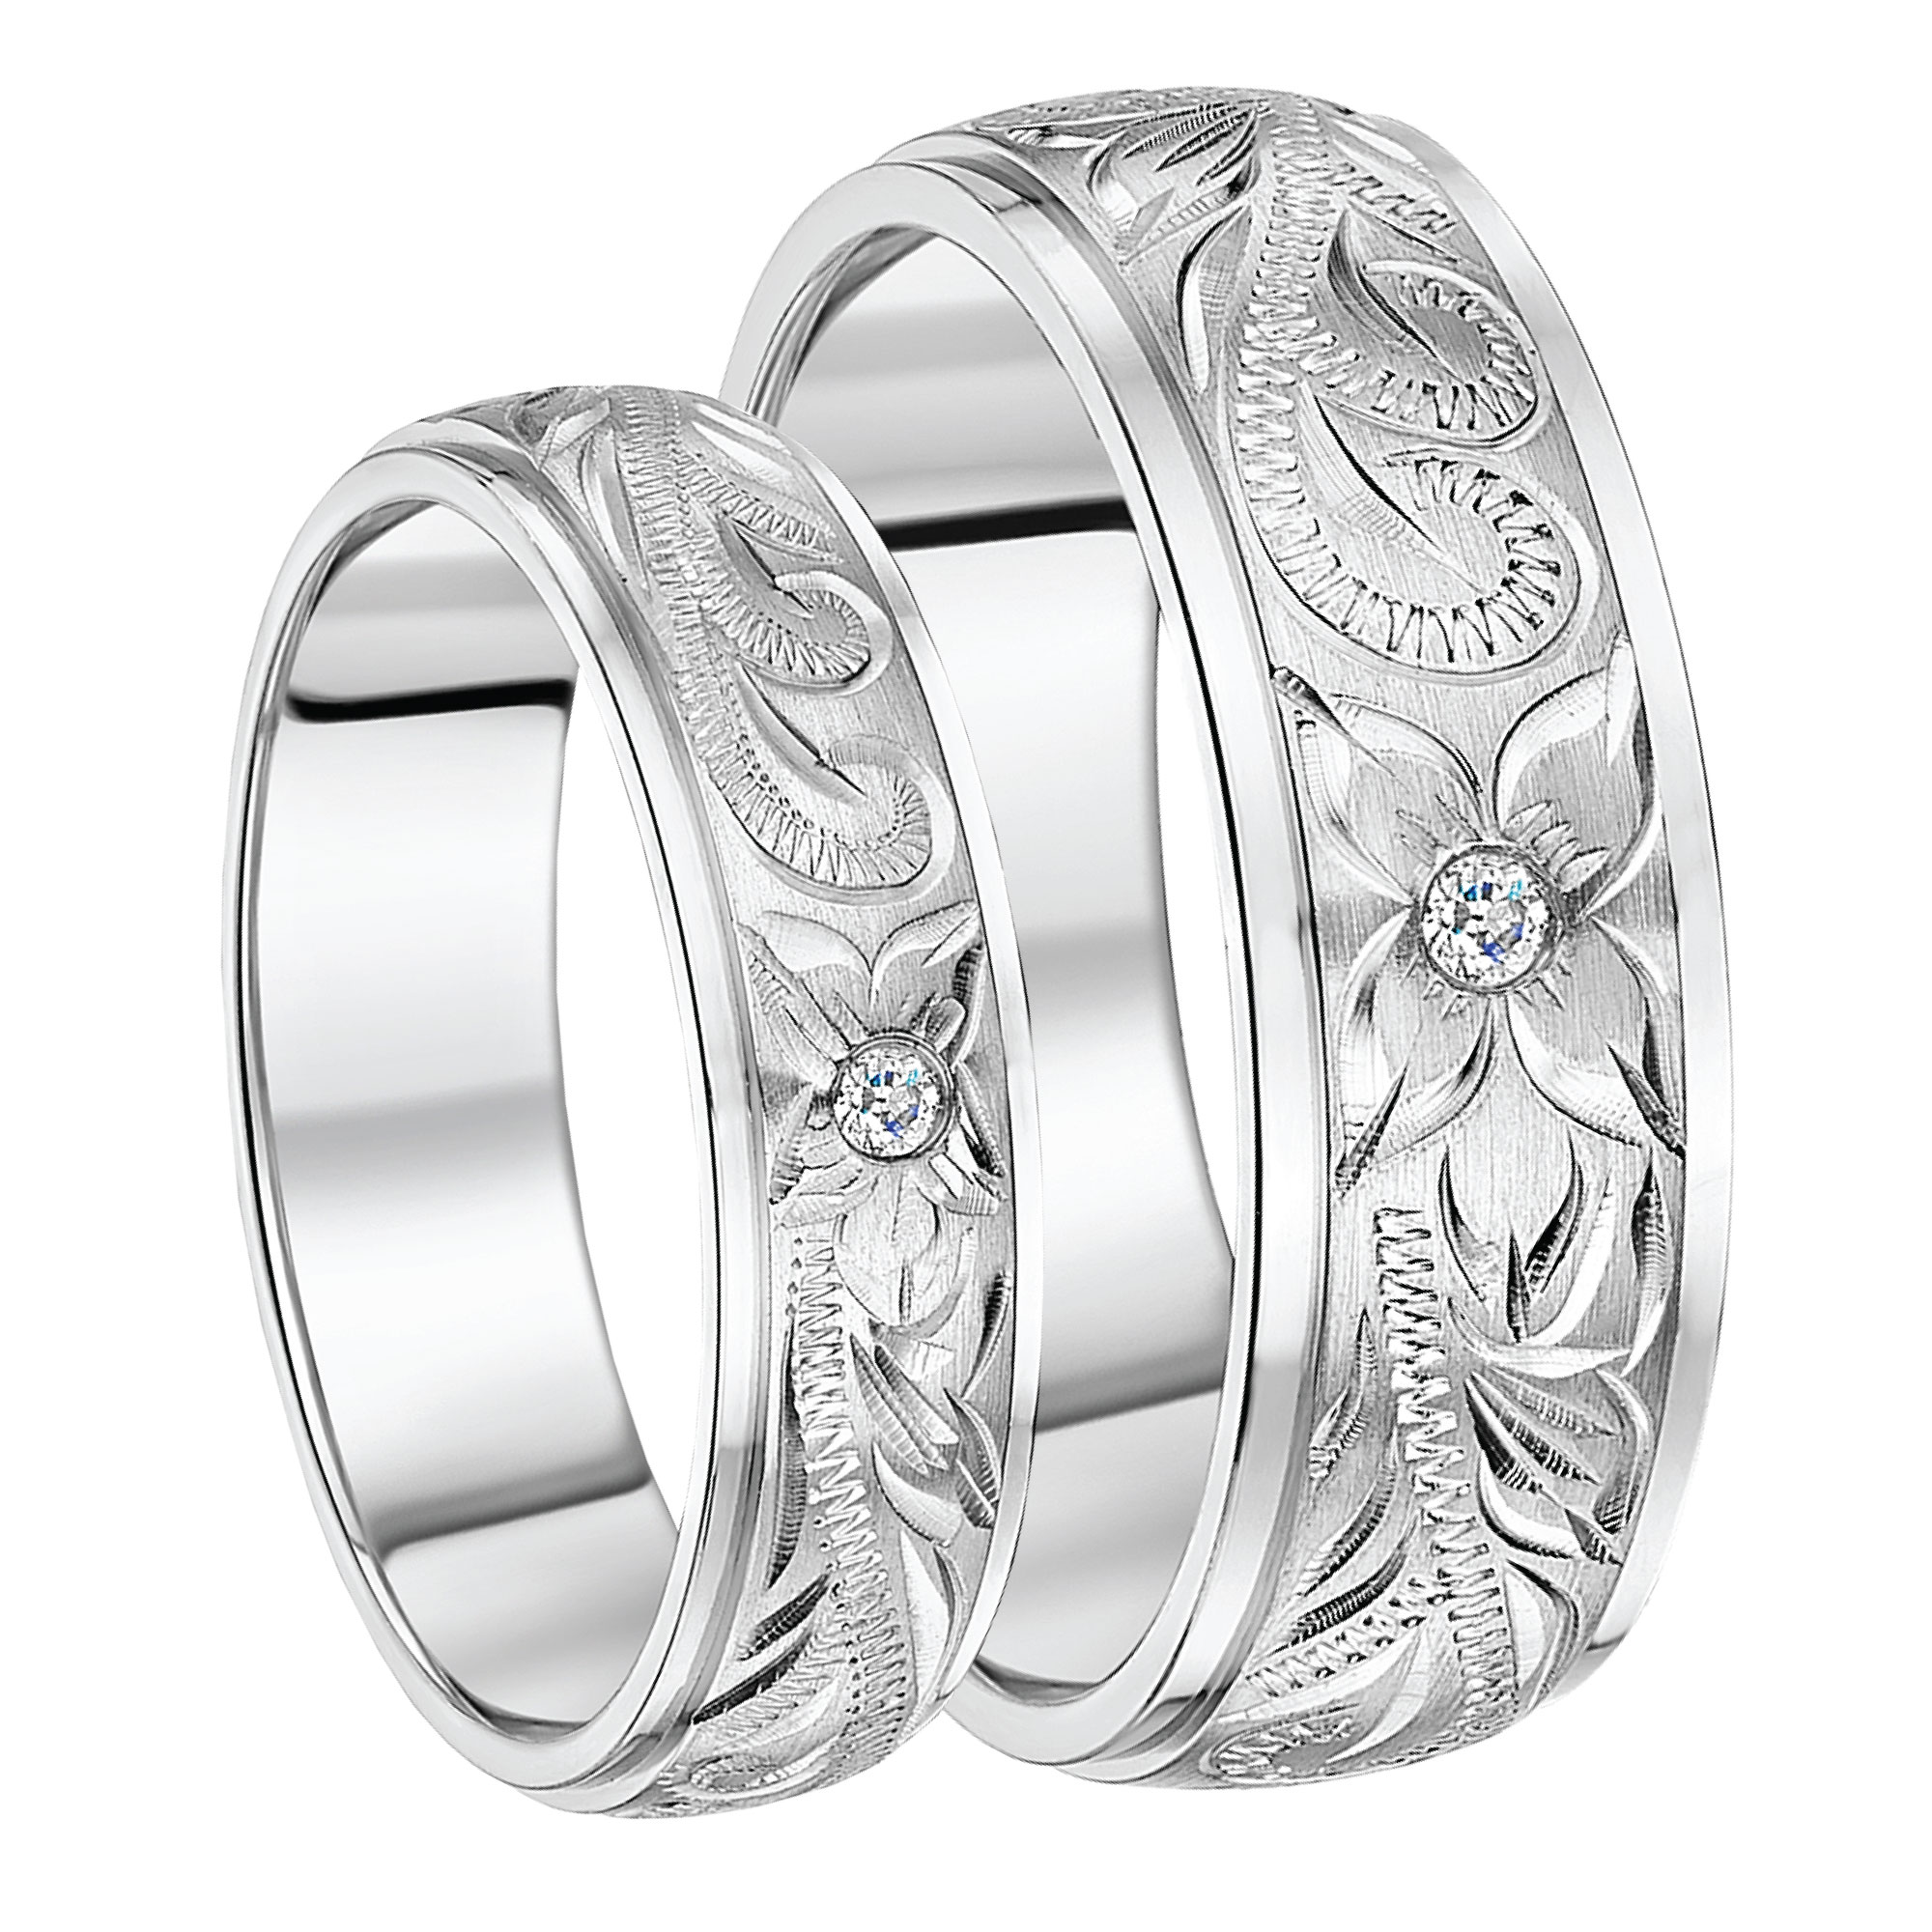 rings make jewelove ring your platinum on unique pto bands fingerpri products wedding love truly by fingerprint jl customized engraved nt